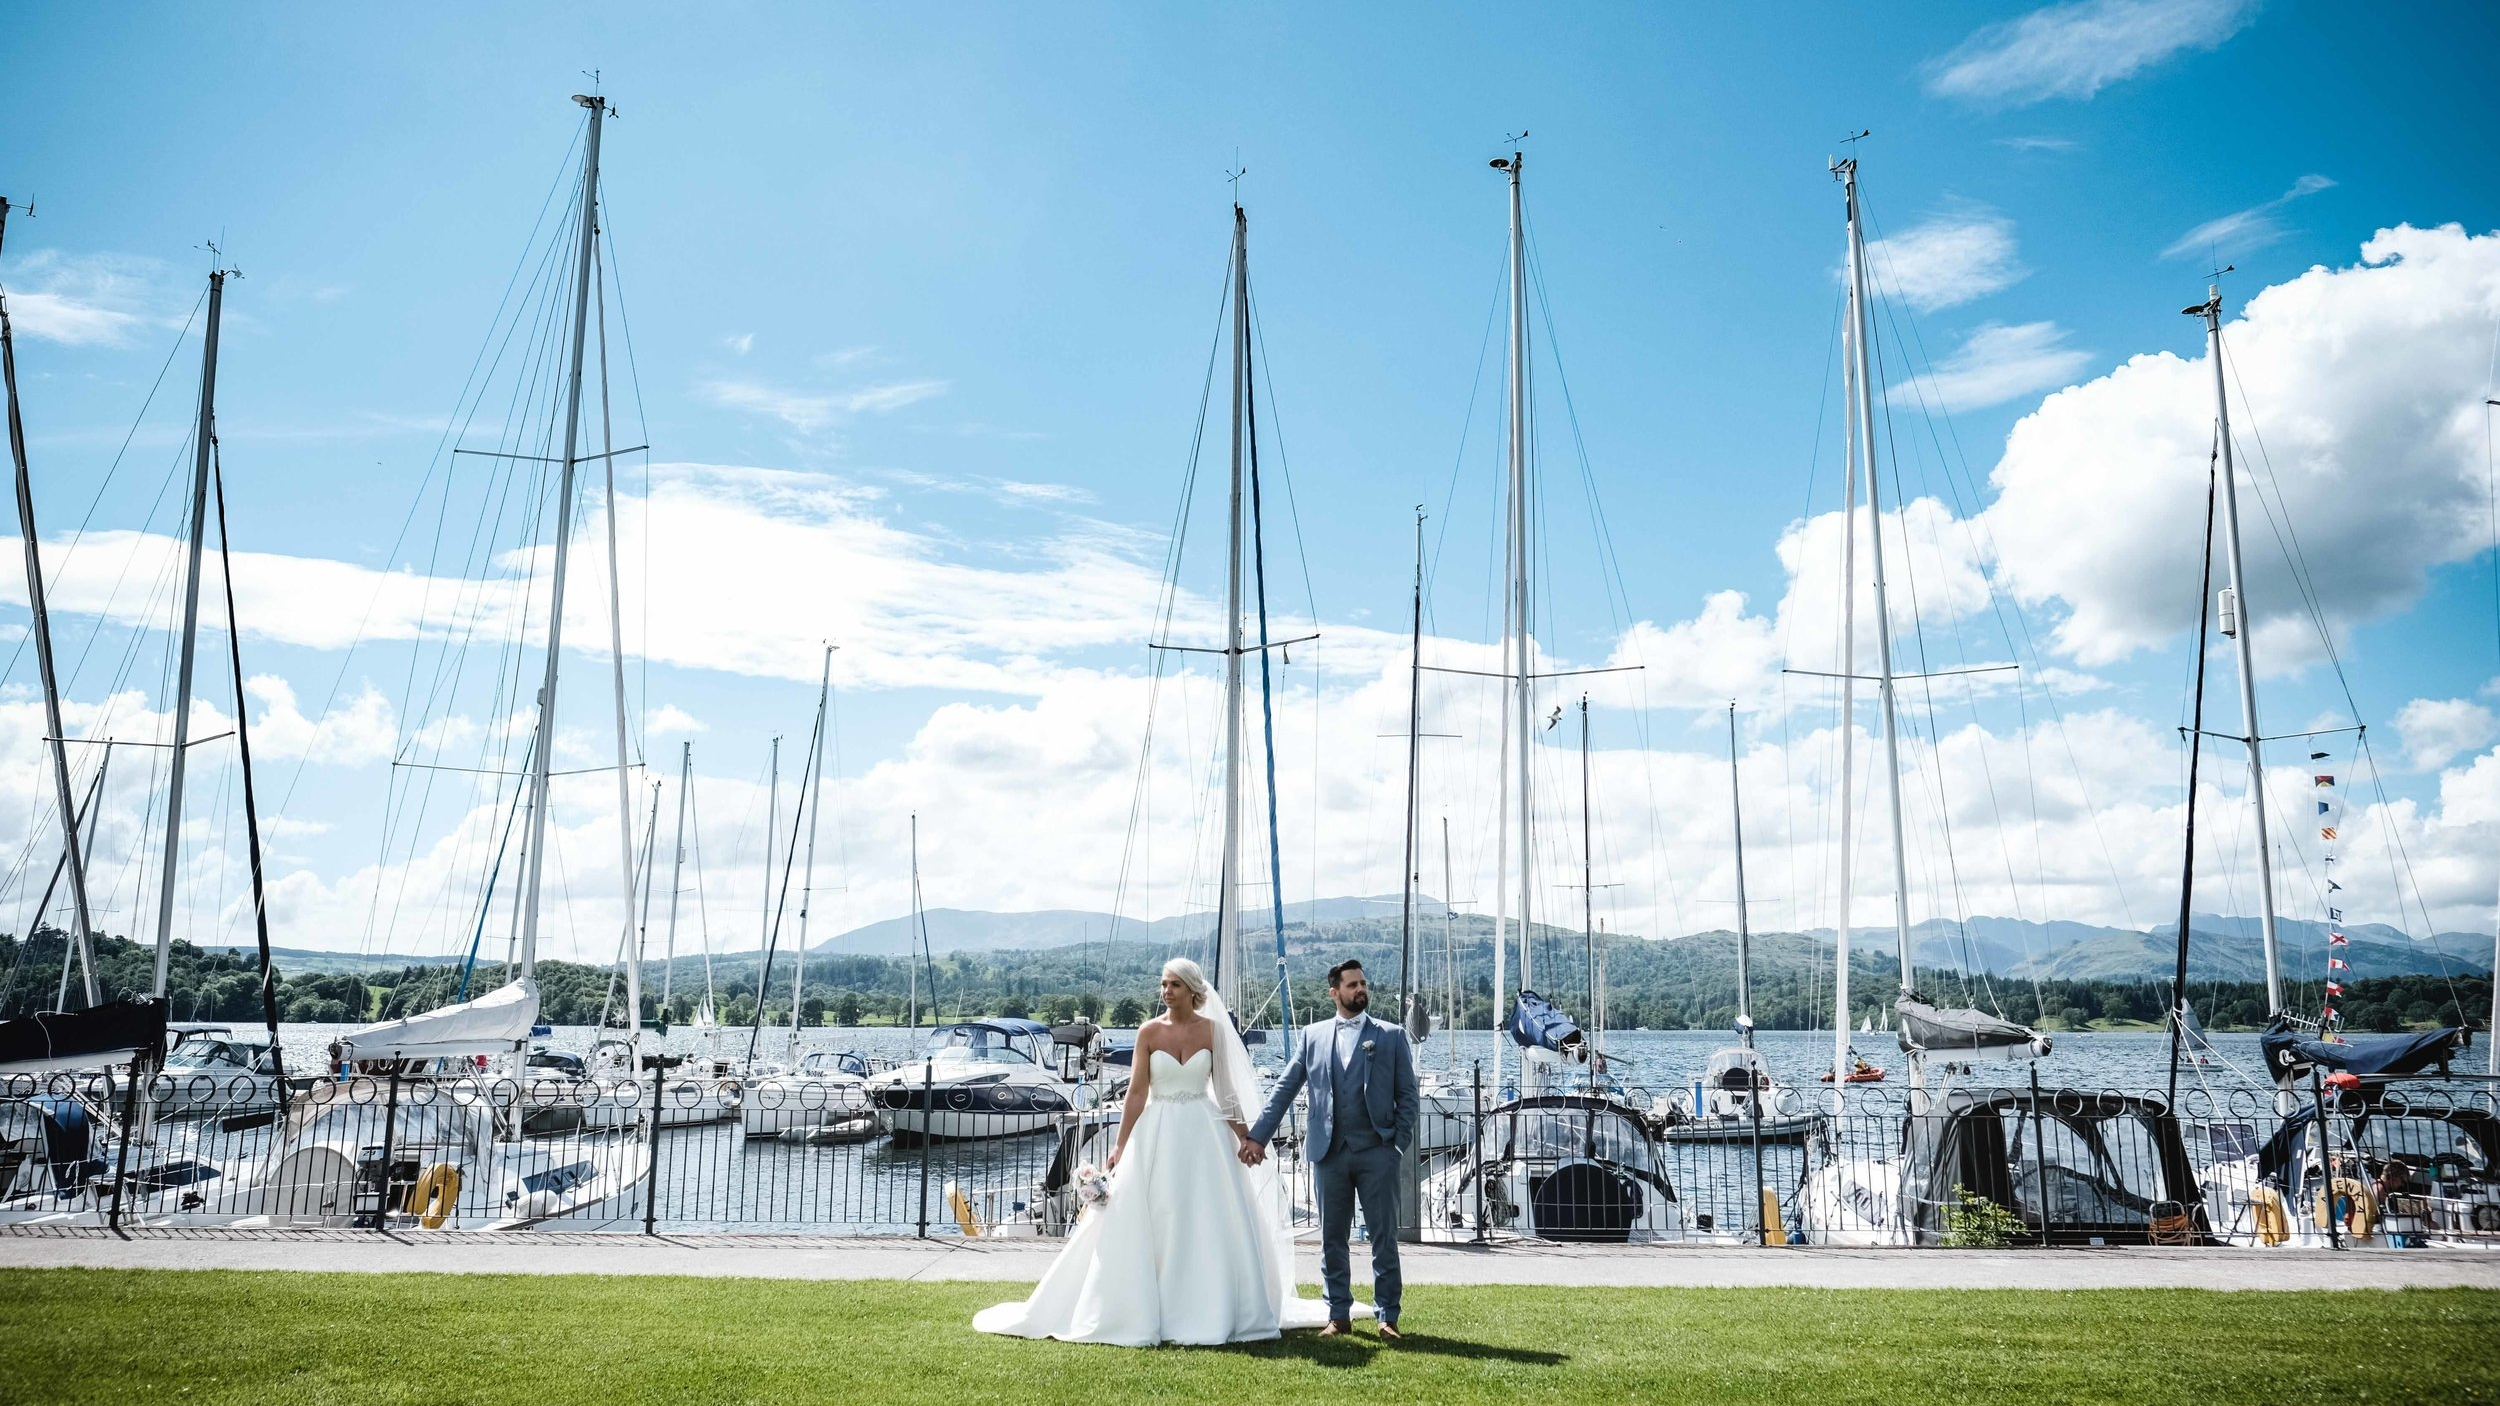 wedding photographers in widnes cheshire covering weddings around the north west of england the uk and destinations abroad (28 of 115).jpg